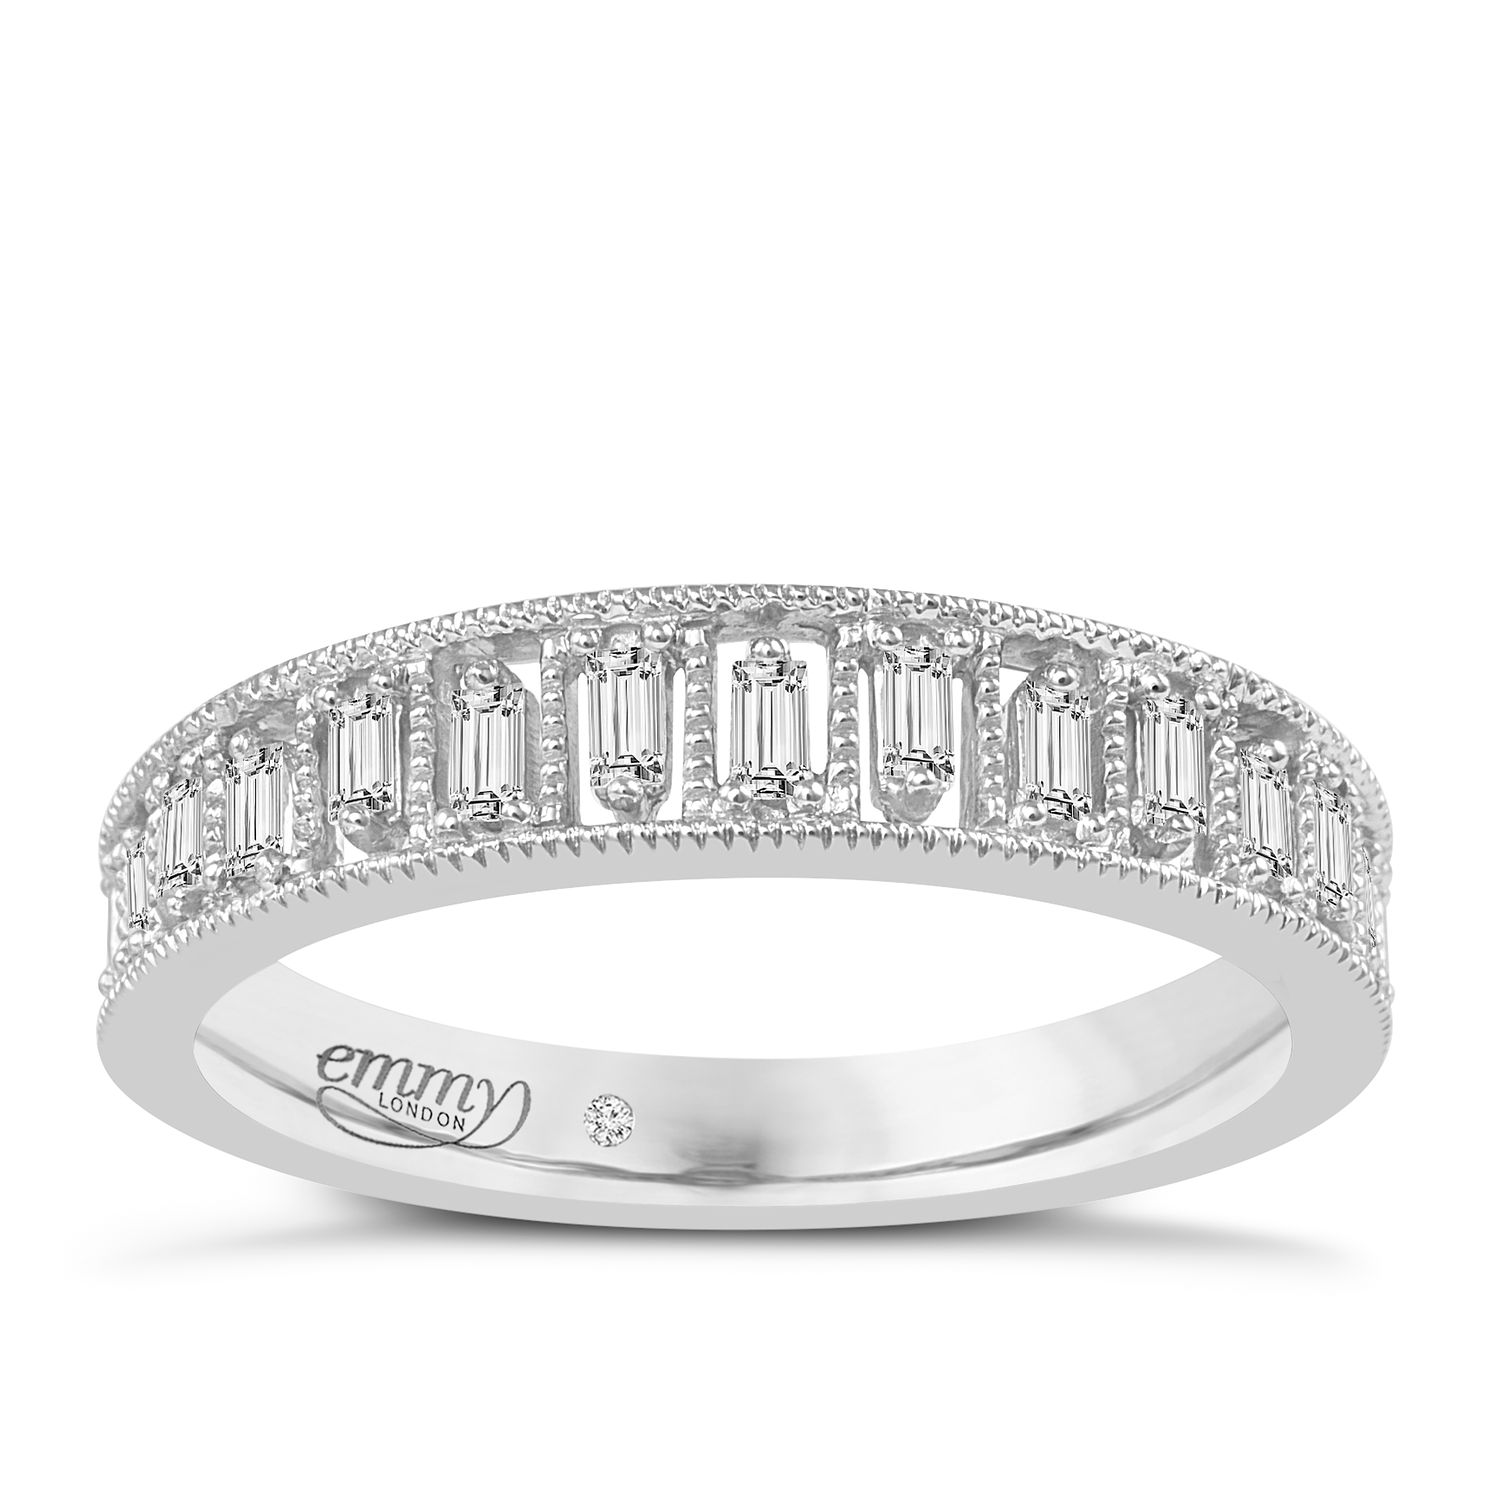 Emmy London Platinum 0.16ct Baguette Cut Diamond Ring - Product number 6442404